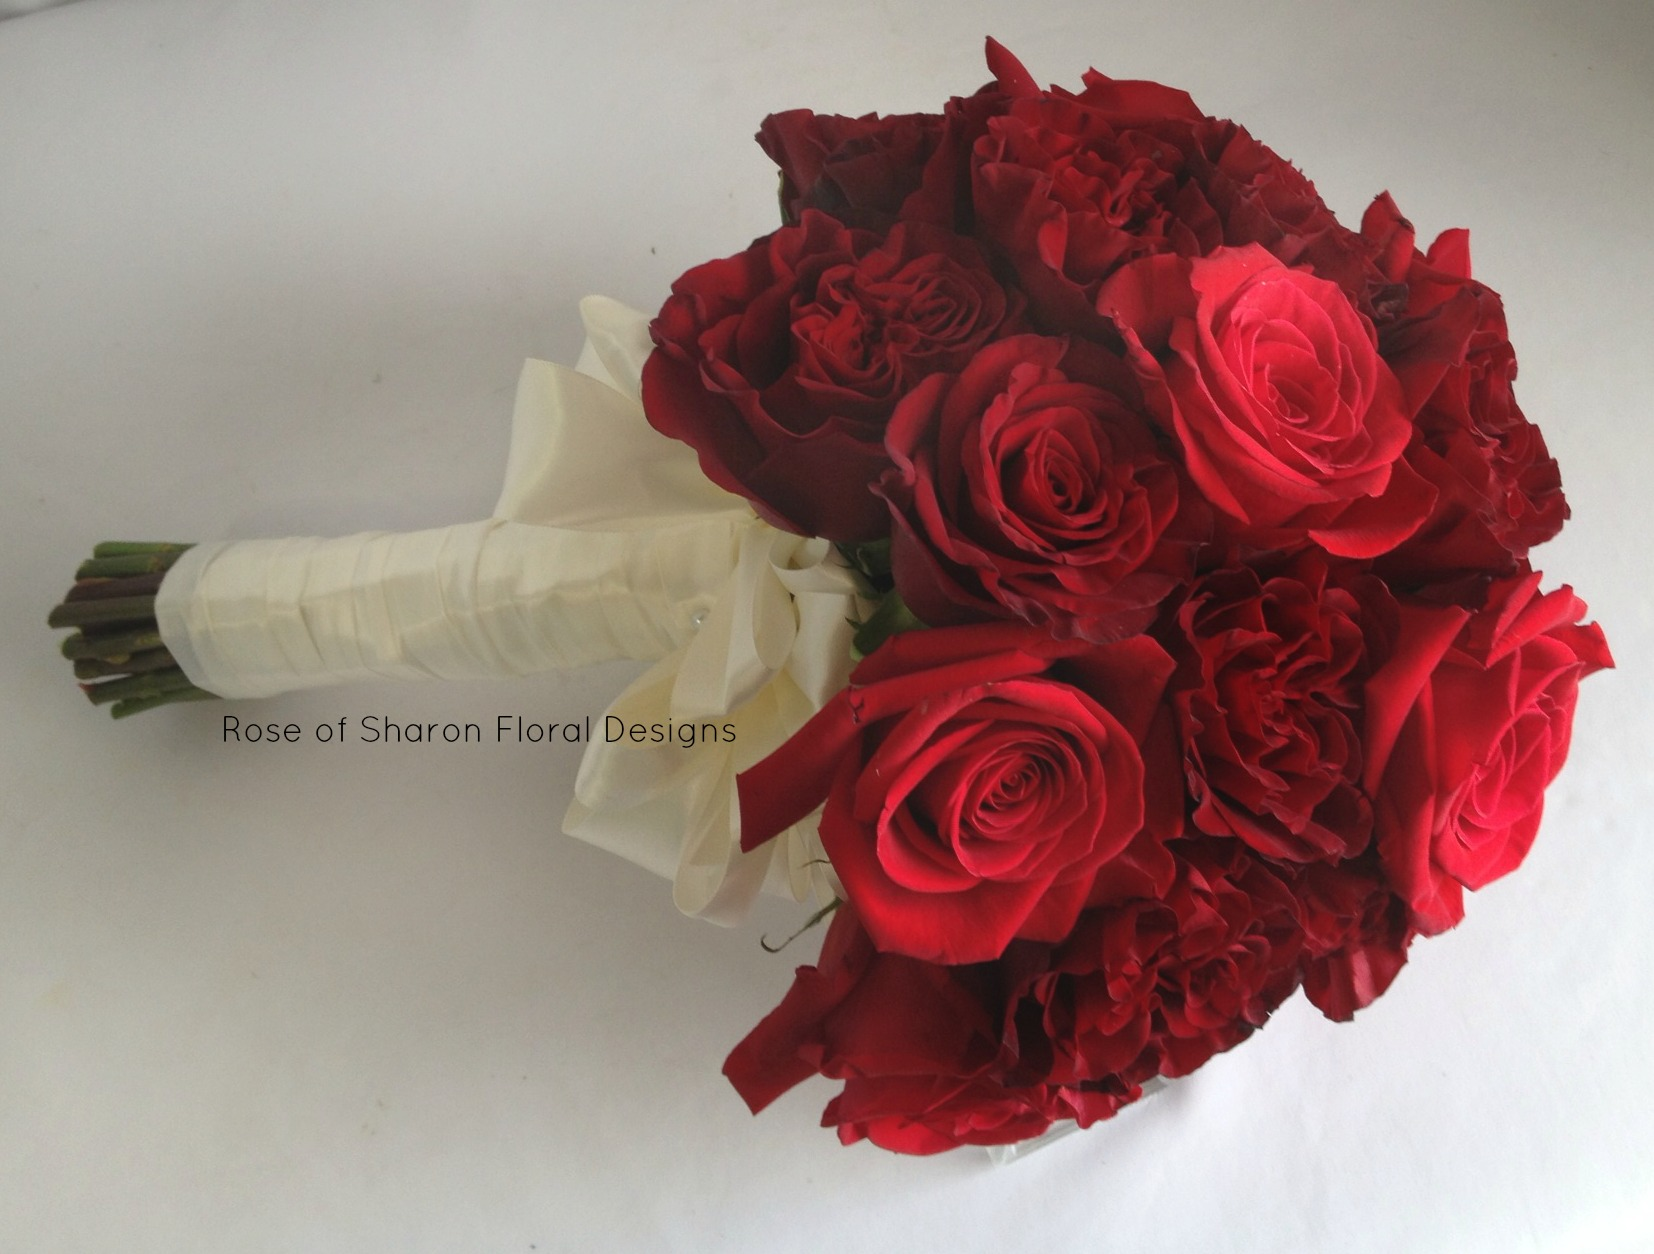 Hand Tied Red Rose Variety Bouquet, Rose of Sharon Floral Designs